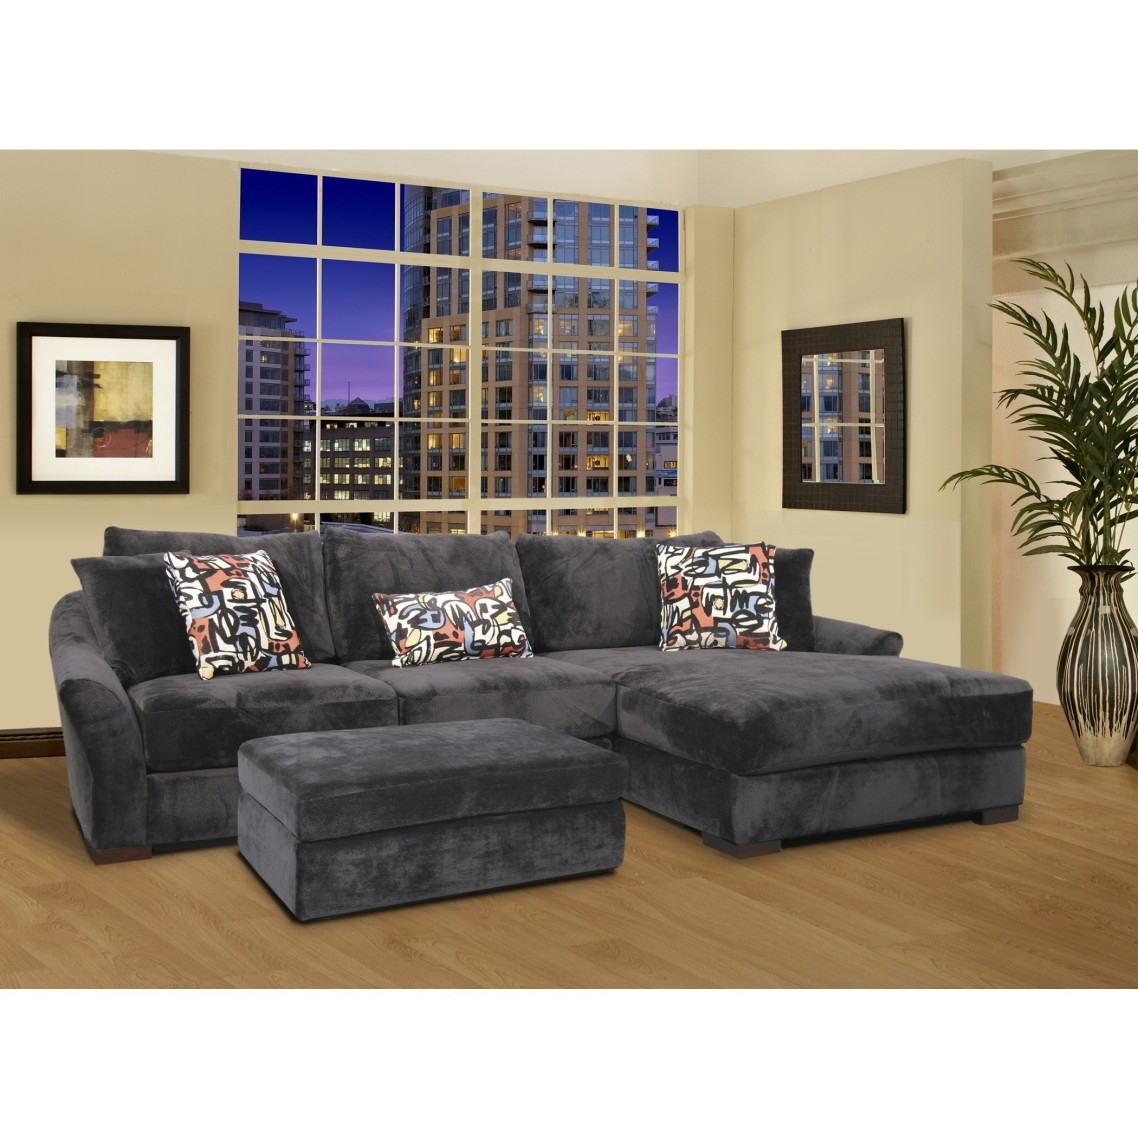 Gray Velvet Oversized Sectional Sleeper Sofa With Left Chaise Pertaining To Coffee Table For Sectional Sofa With Chaise (View 14 of 15)